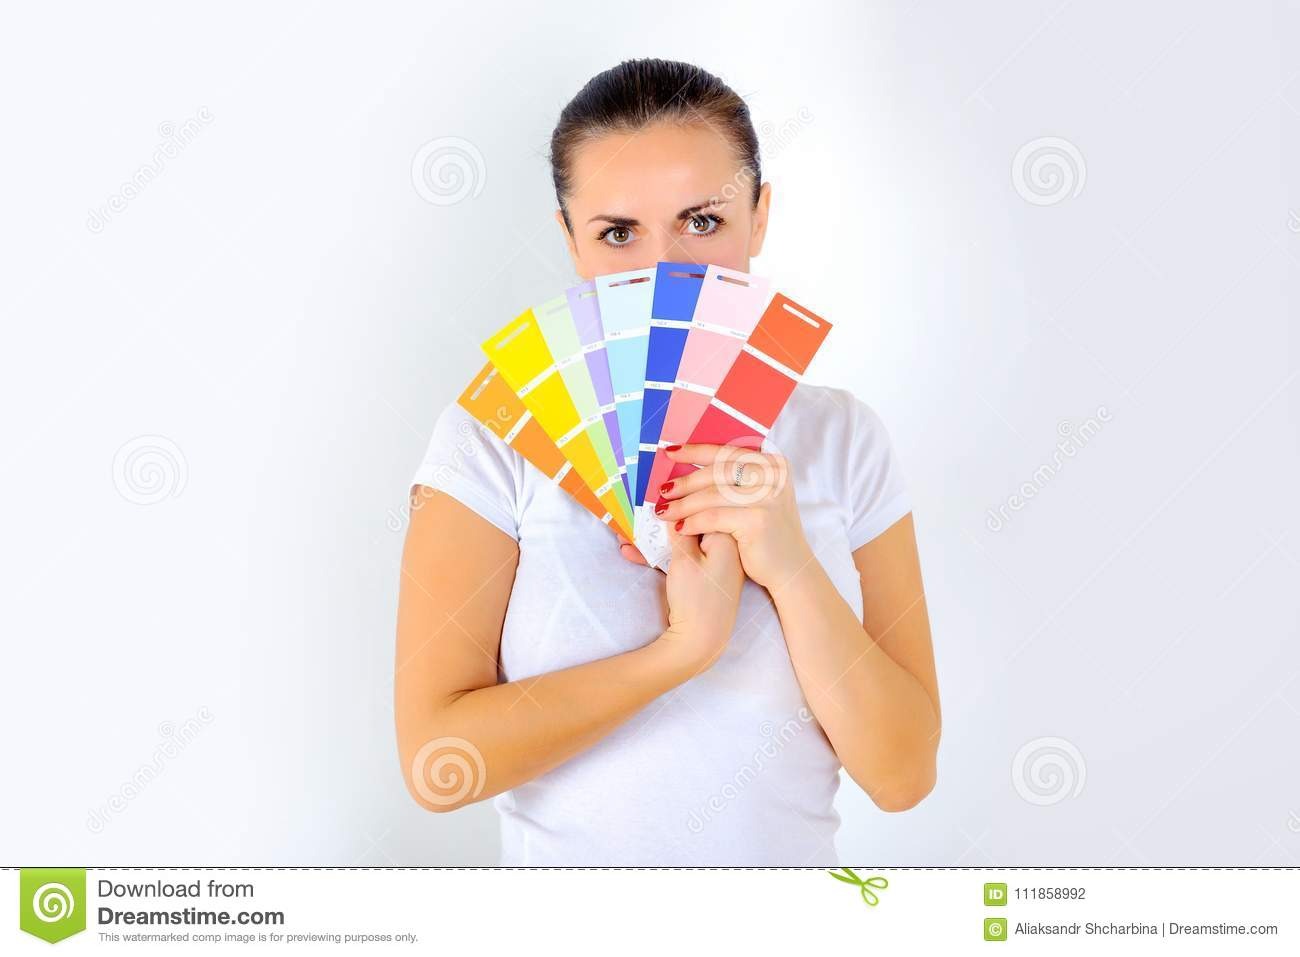 Girl holds a fan in her hands to choose a paint